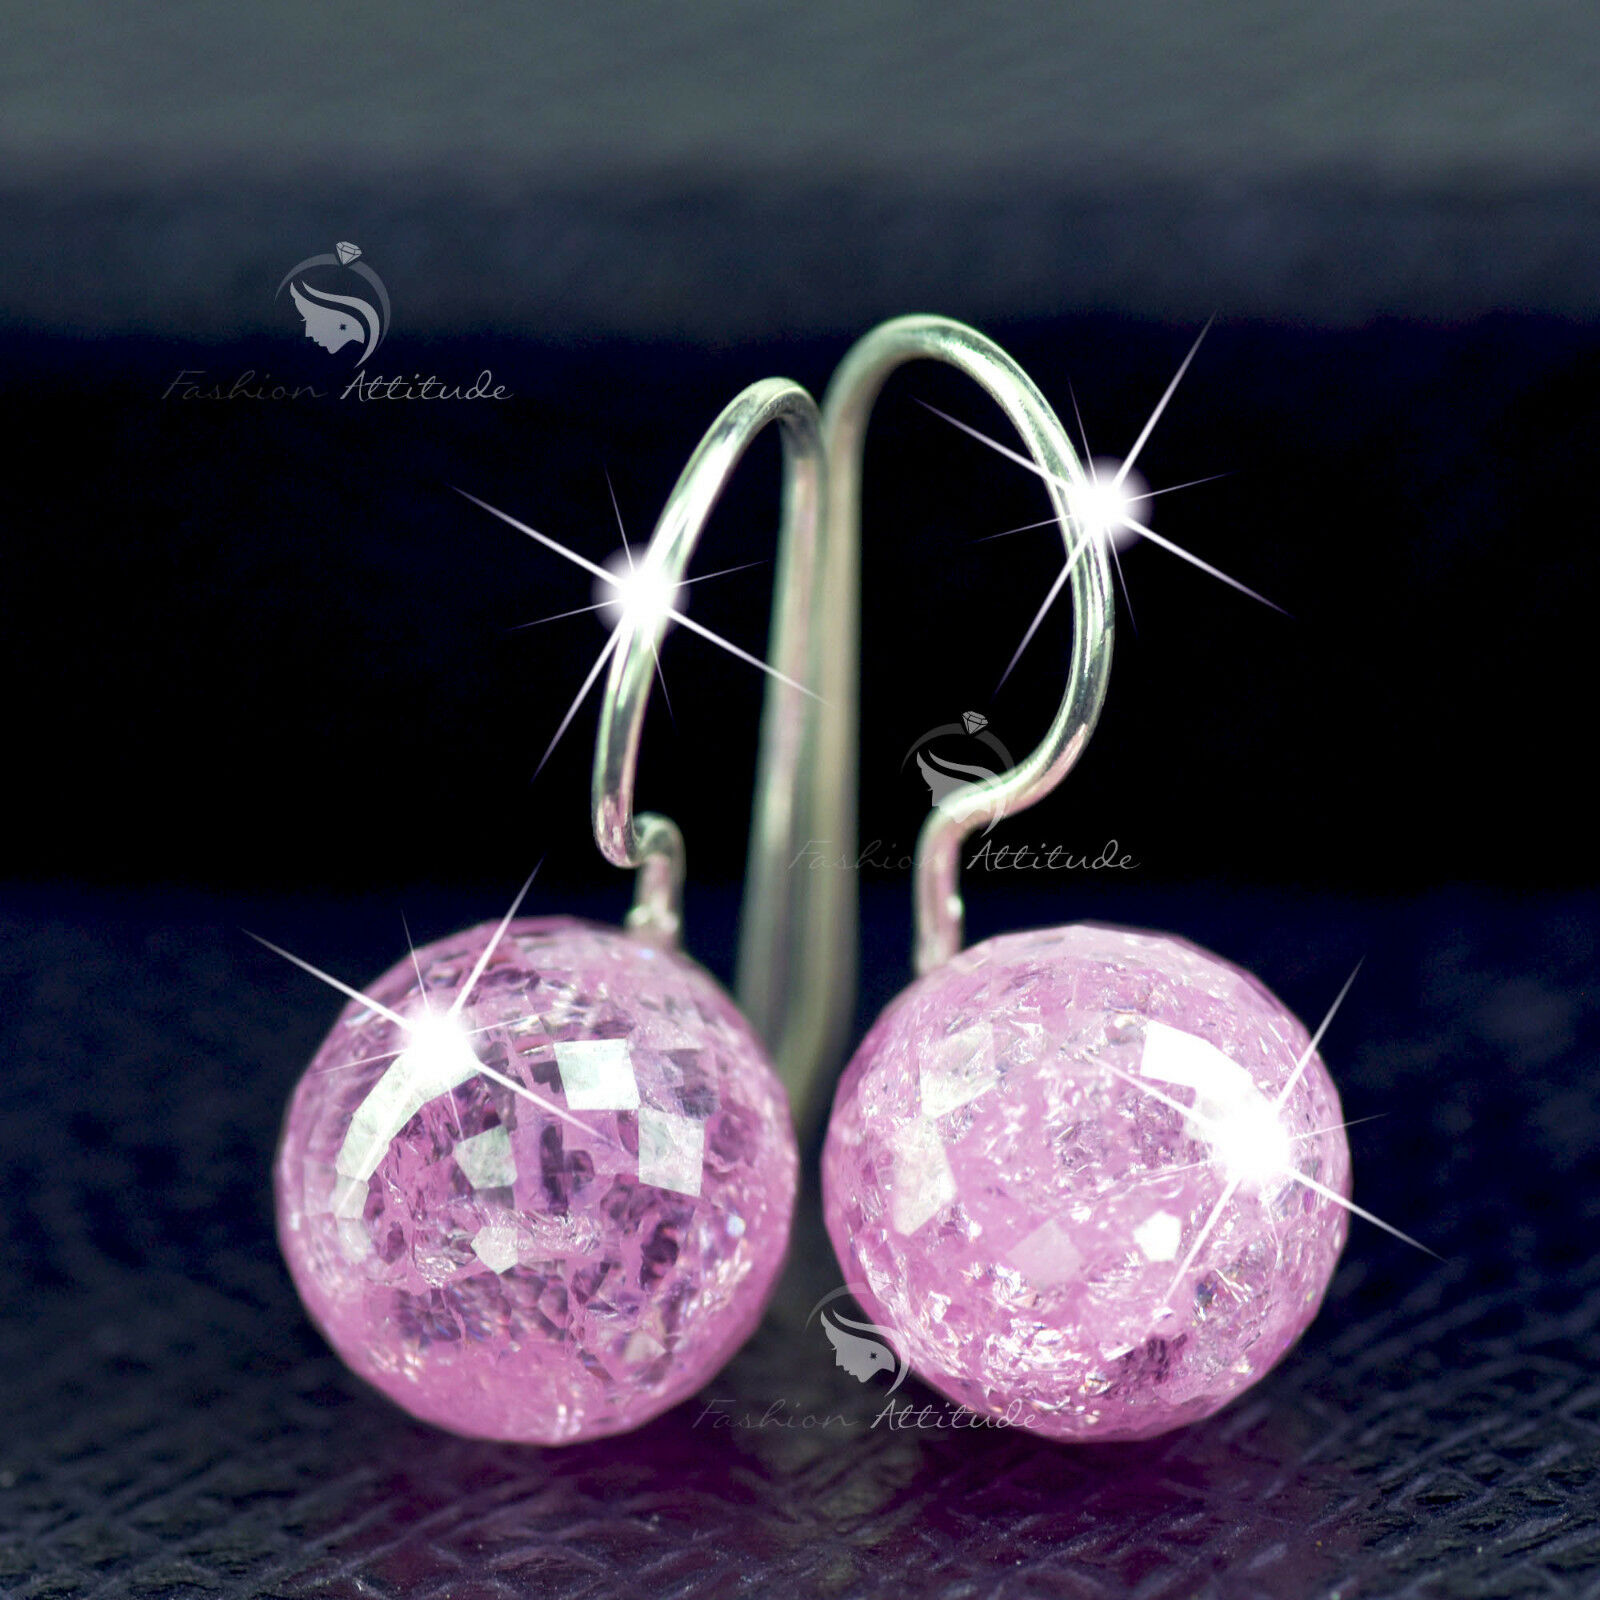 f69064e8b4d63 Details about solid sterling 925 silver 10MM pink natural crystal ball drop  hook earrings